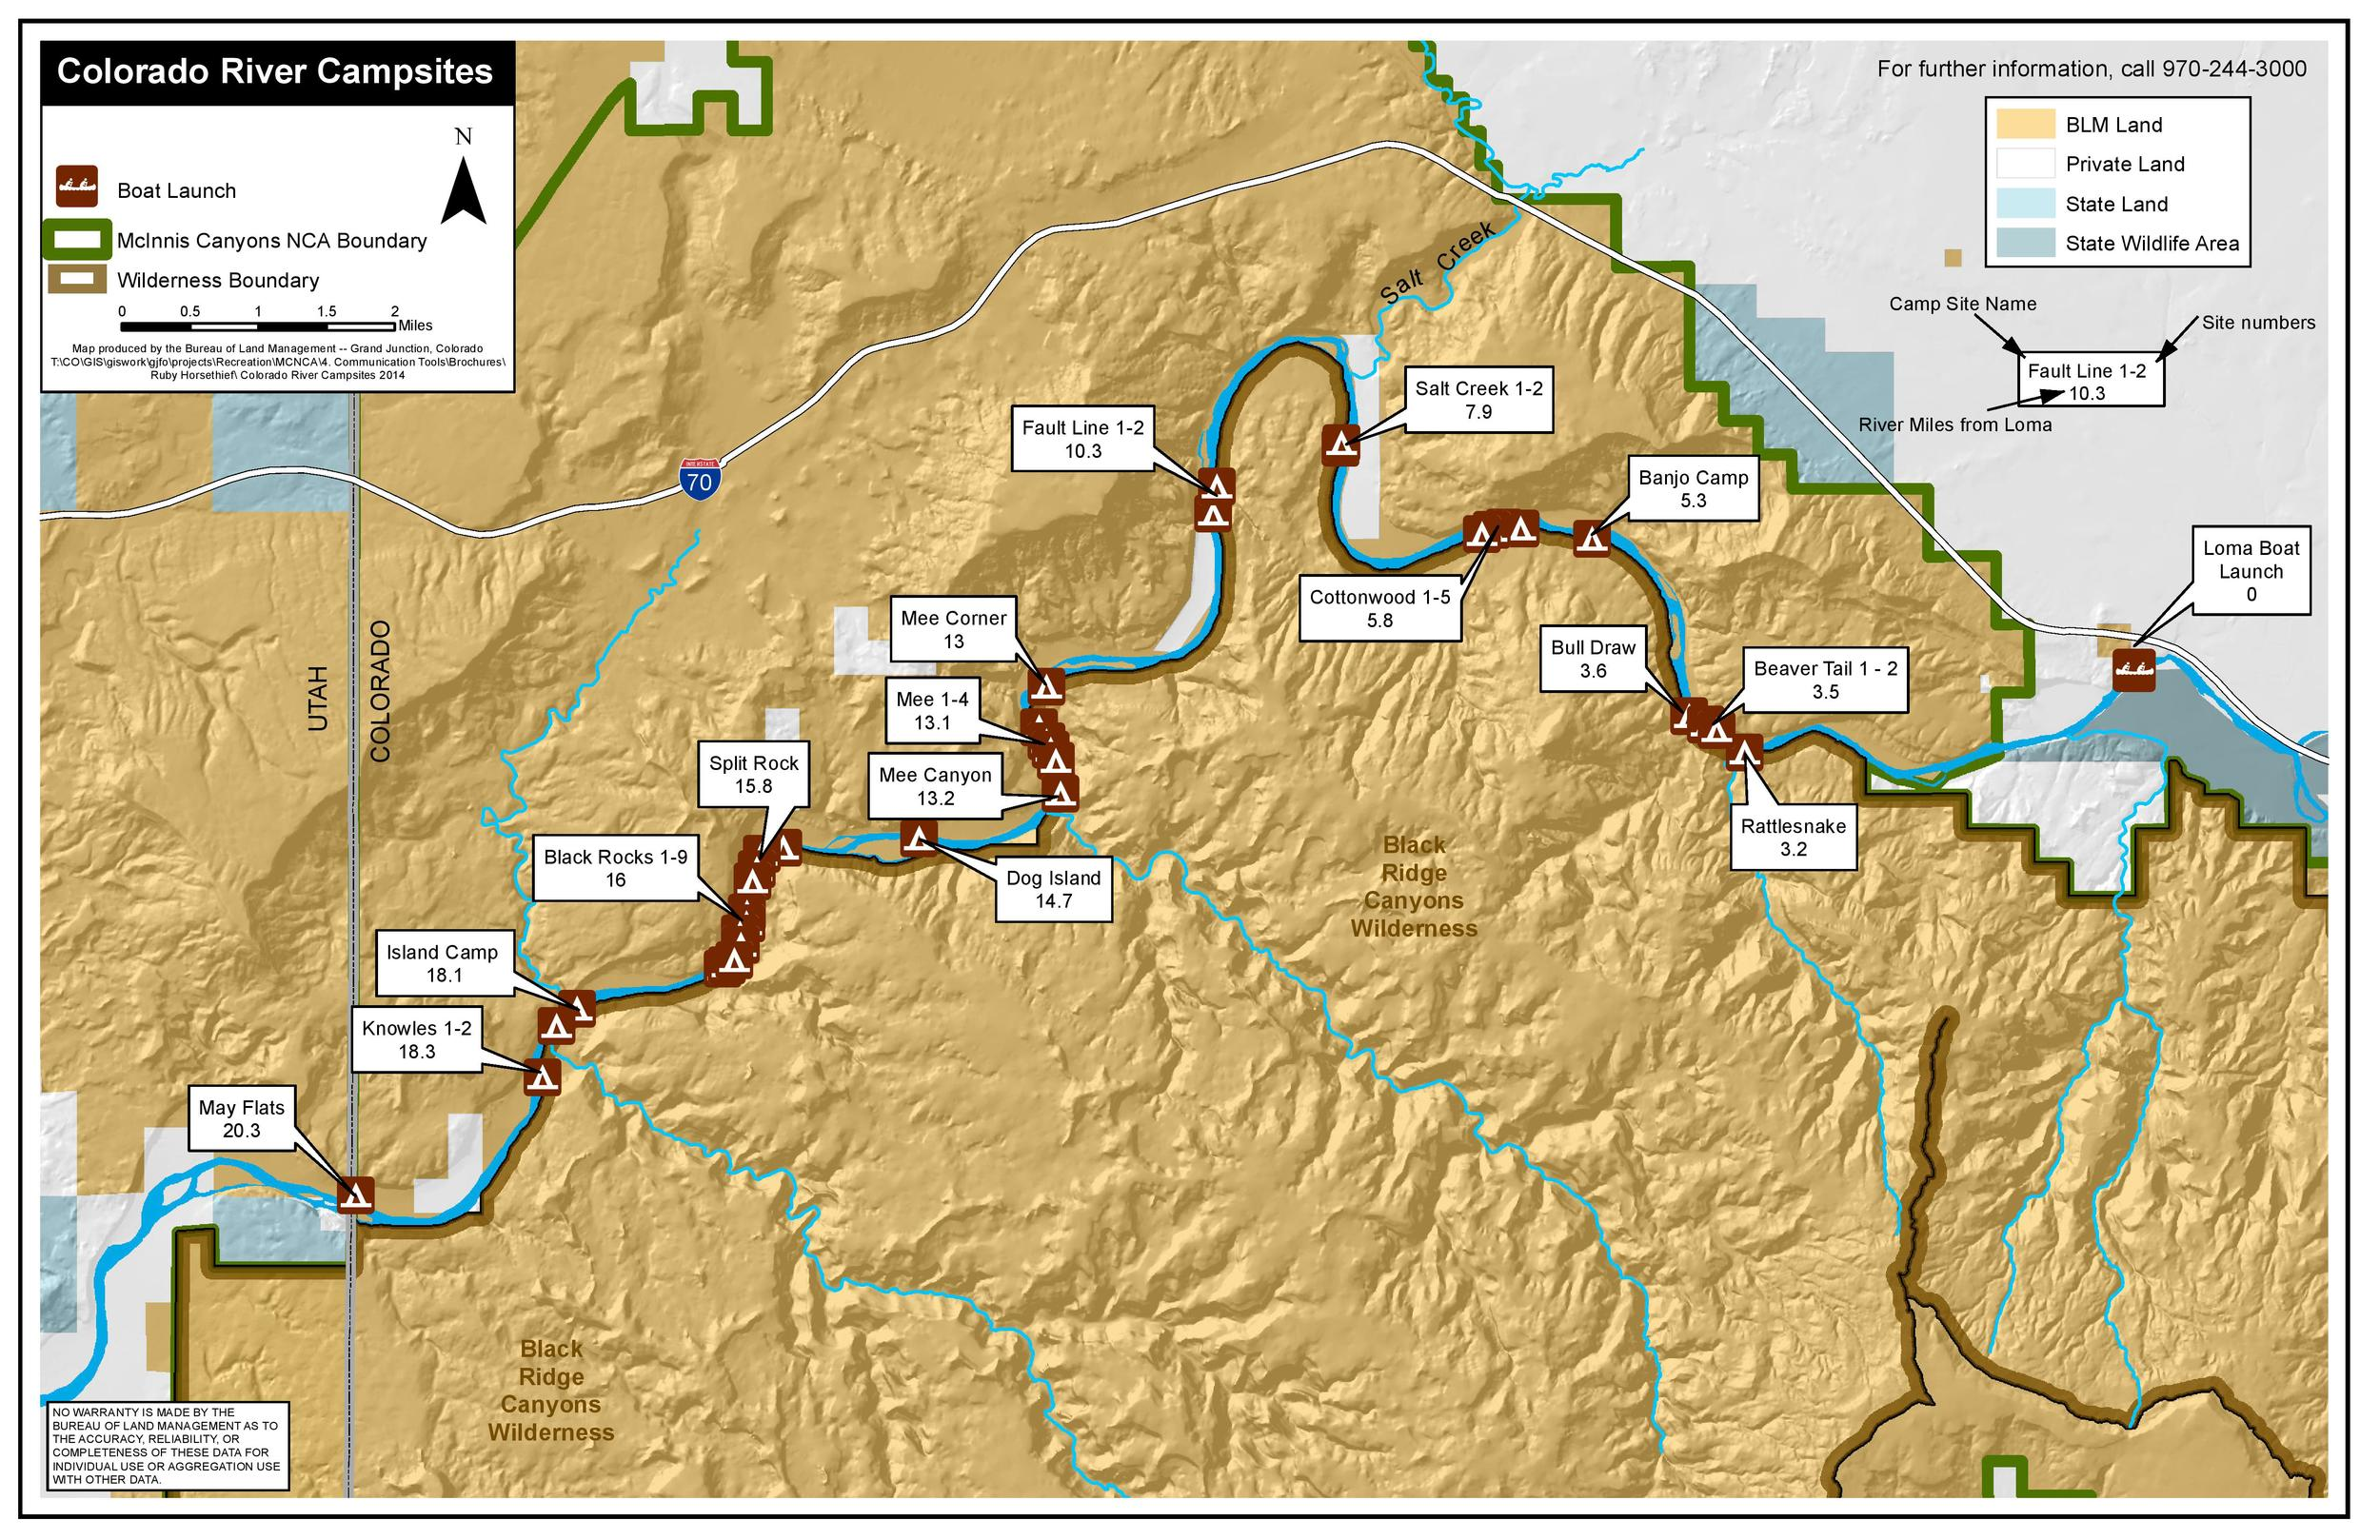 Ruby Horsethief map - courtesy of Colorado Canyons Association. Numbers are mileage from Loma boat ramp.